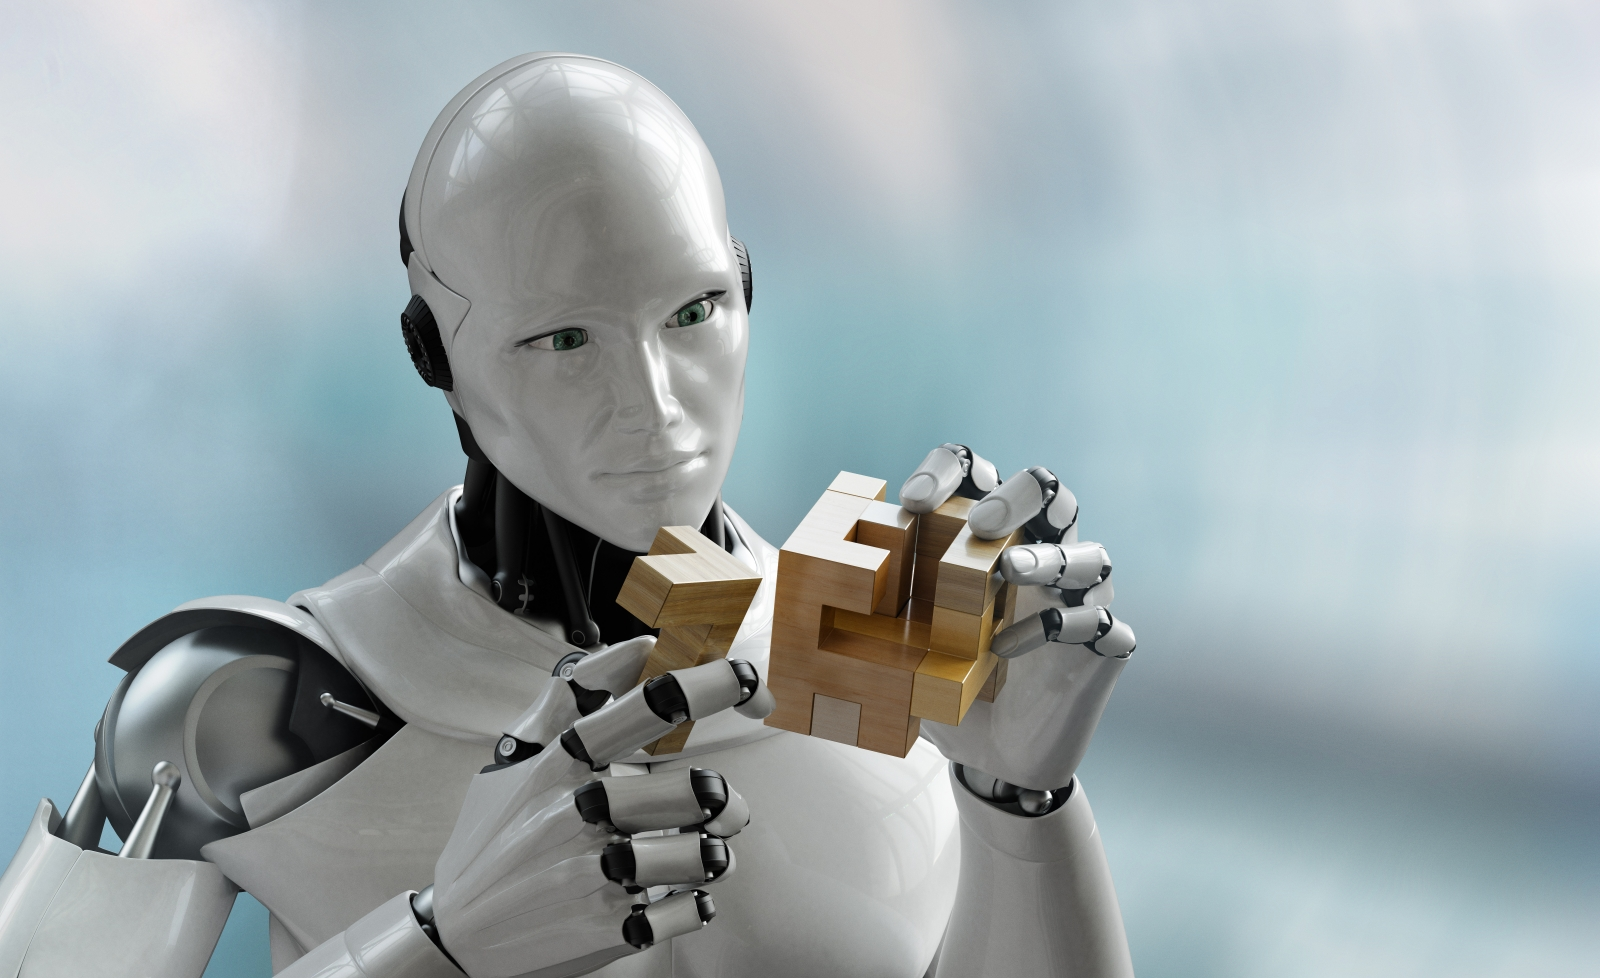 Neural networks breakthrough sees computer start to think like a human for the first time